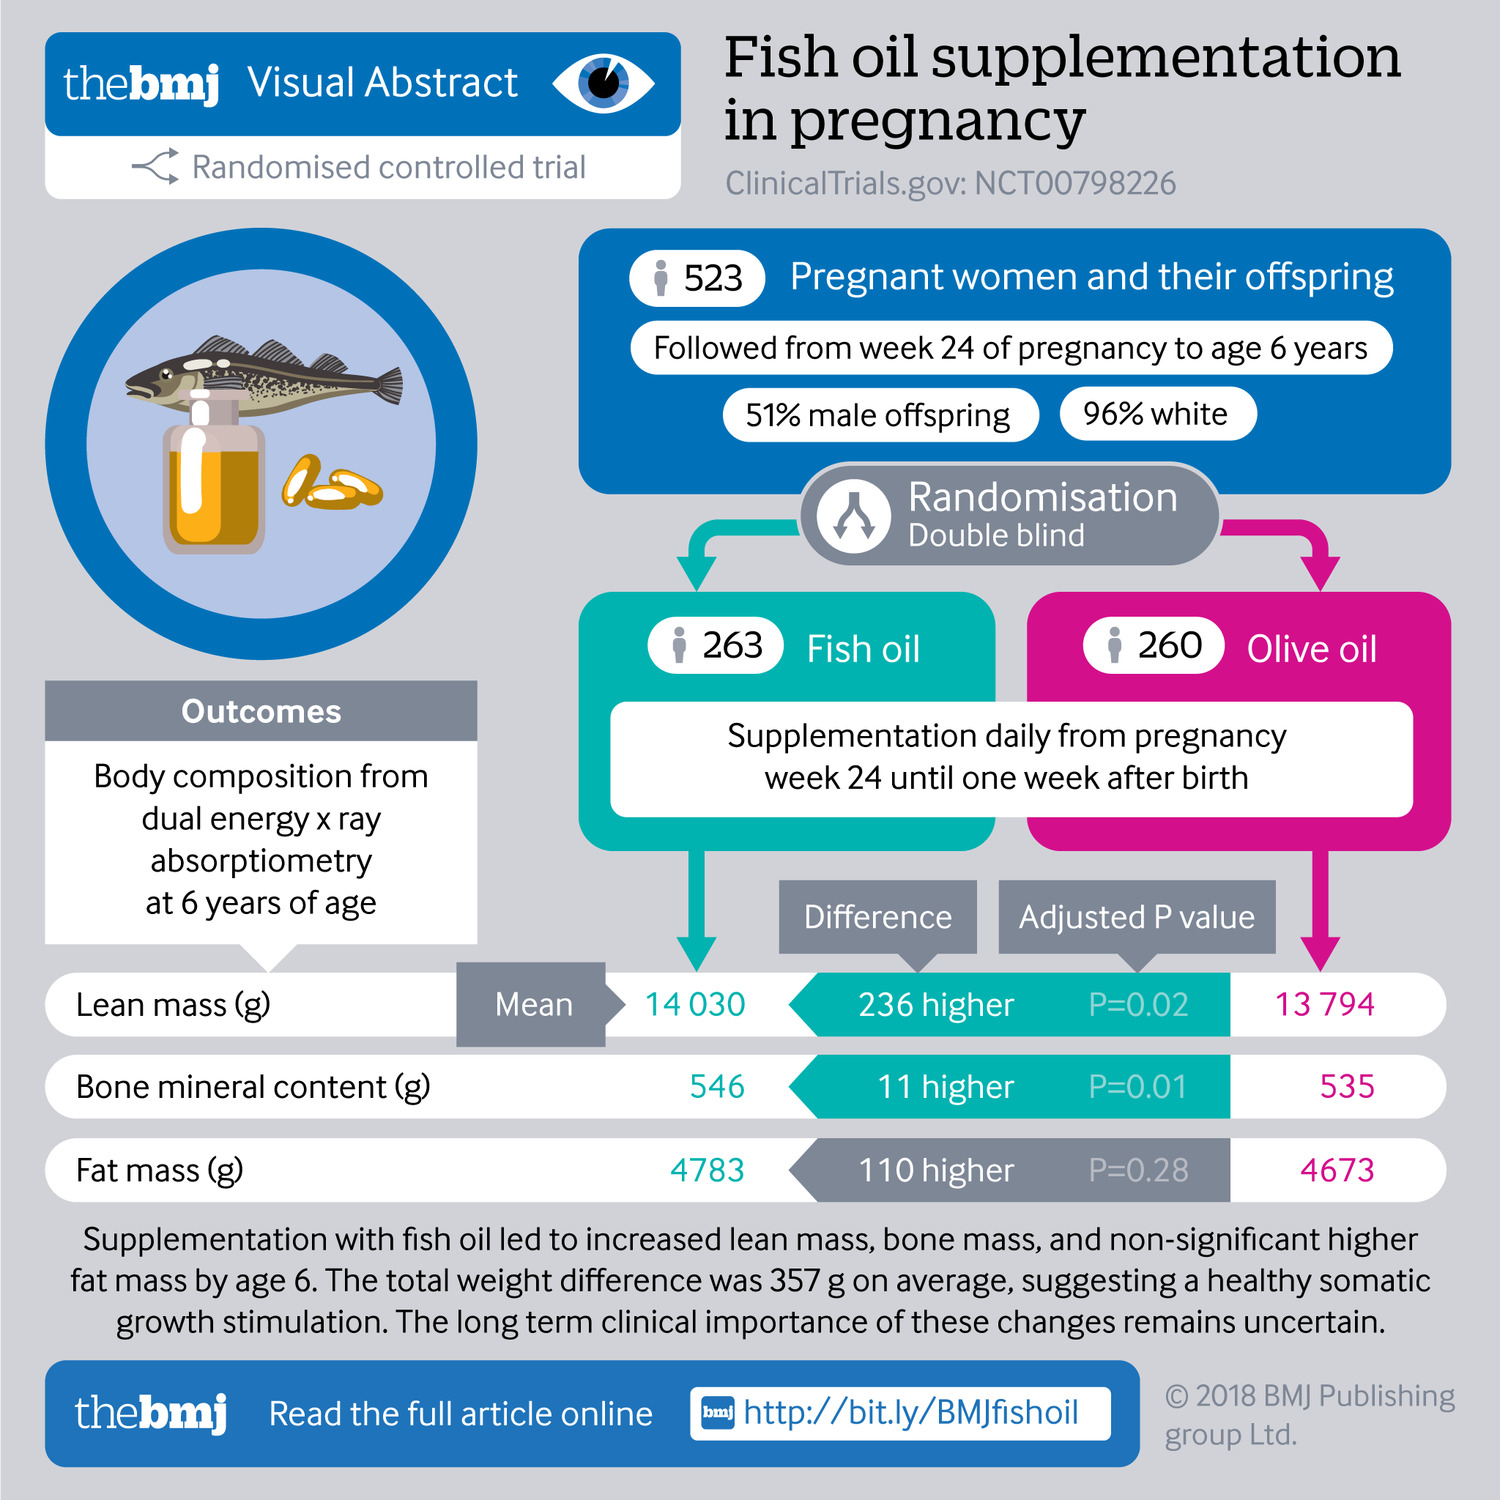 Effect of fish oil supplementation in pregnancy on bone